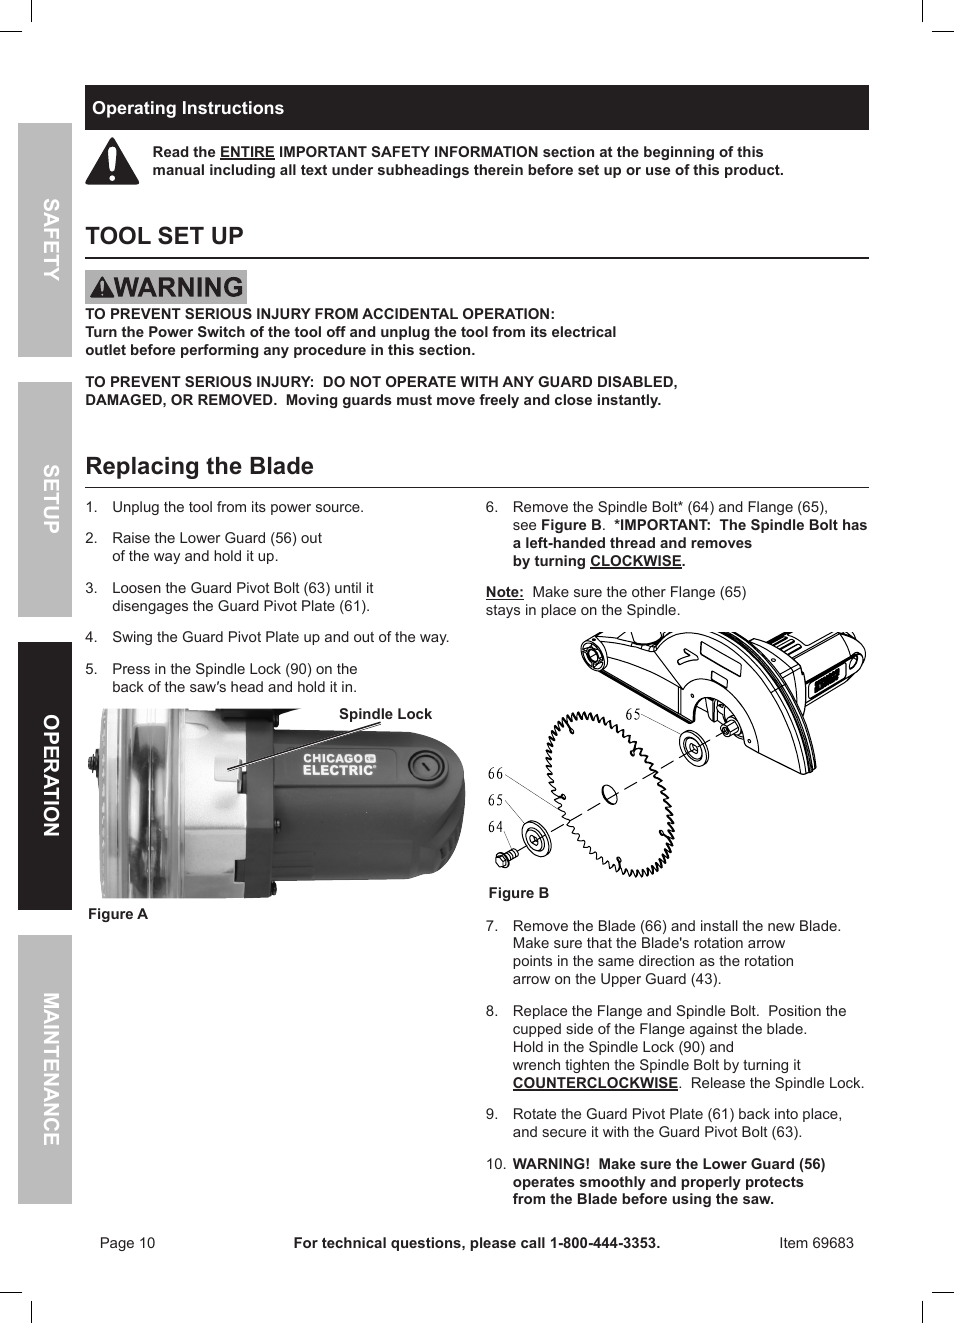 Tool set up replacing the blade safety opera tion maintenance tool set up replacing the blade safety opera tion maintenance setup chicago electric 10 compound miter saw with laser guide 69683 user manual page 10 greentooth Choice Image